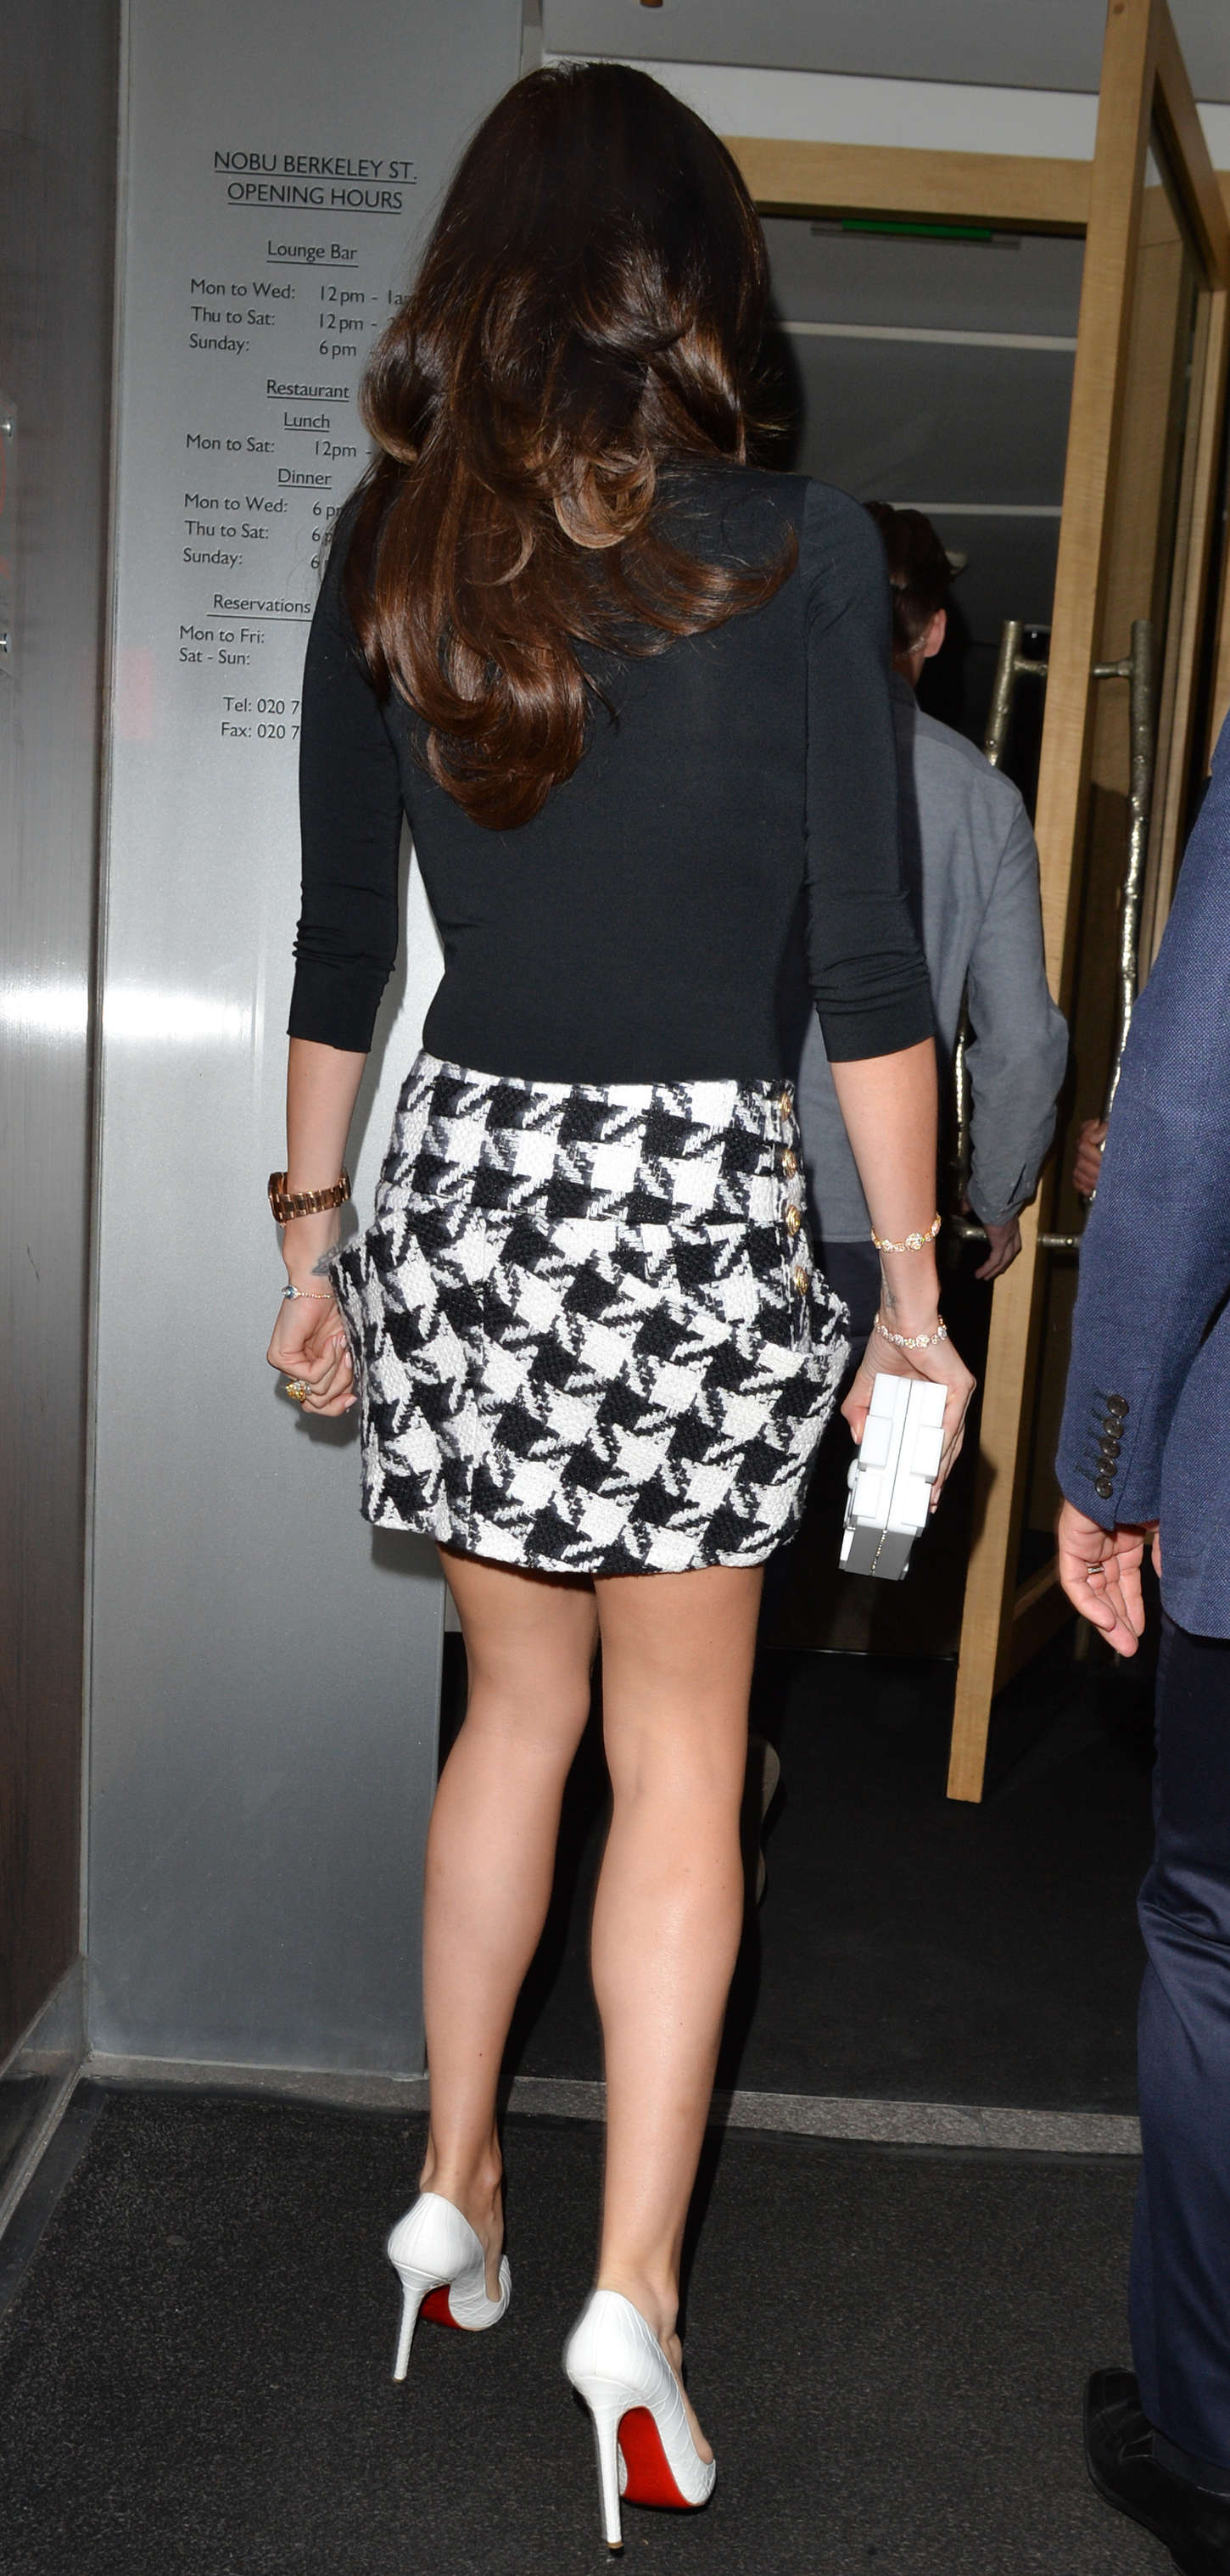 Tamara Ecclestone at Nobu Restaurant in London